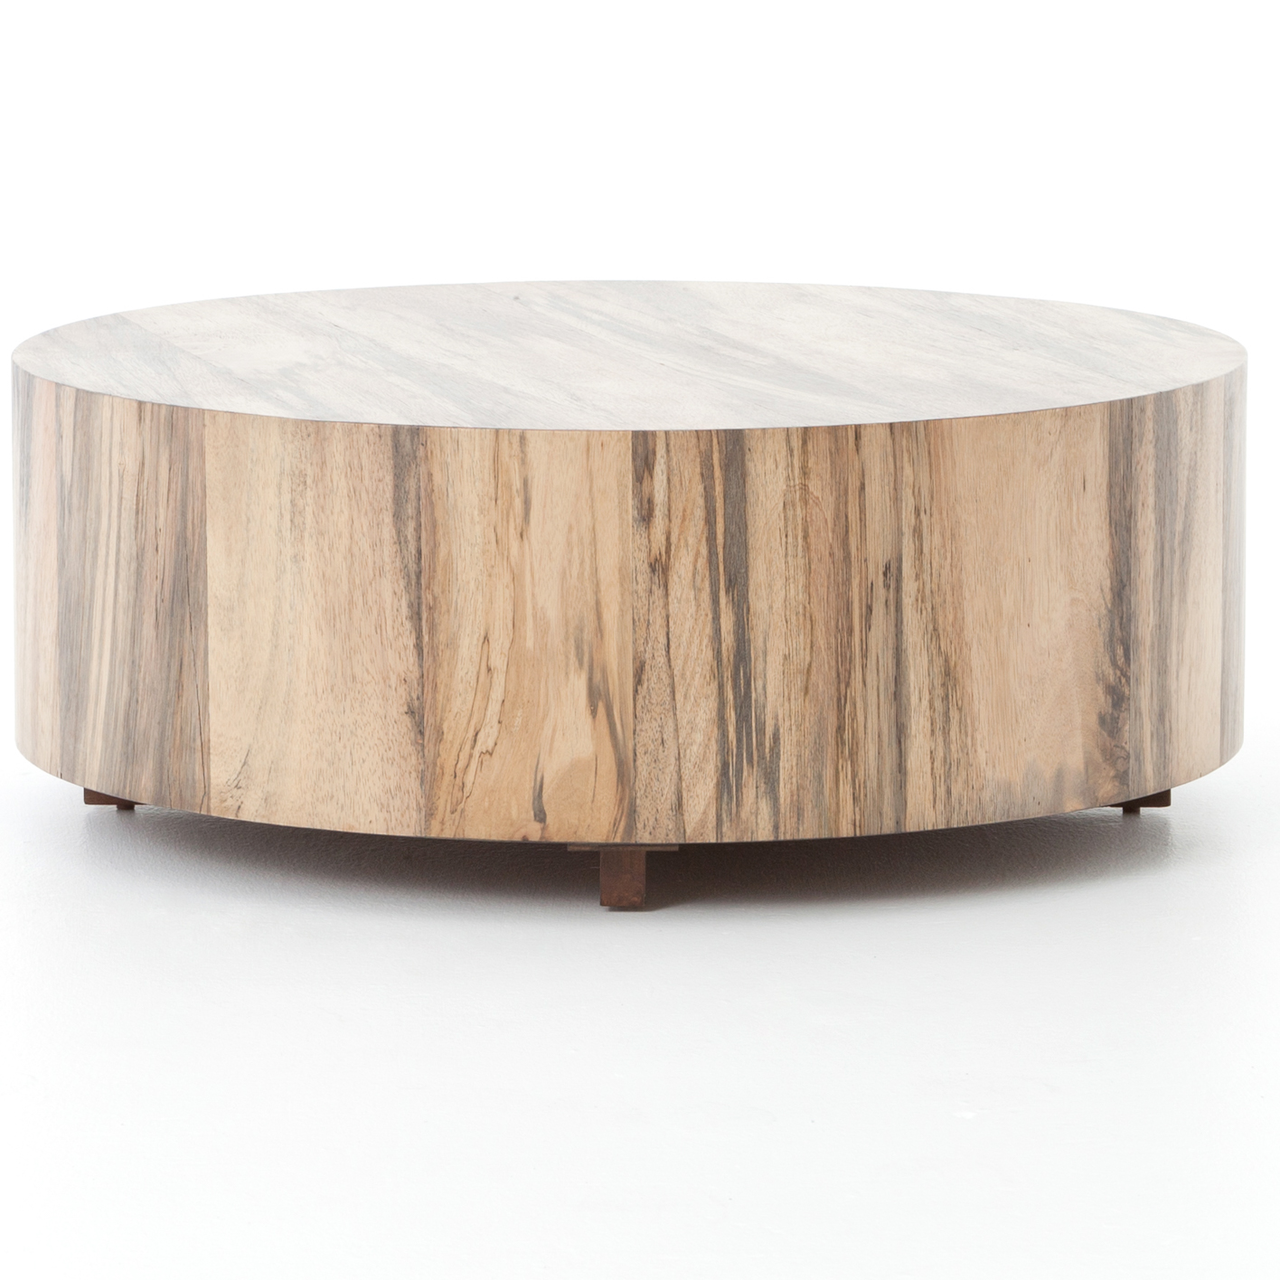 Hudson Spalted Rustic Wood Block Round Coffee Table Drum Coffee Table Coffee Table Wood Round Wood Coffee Table